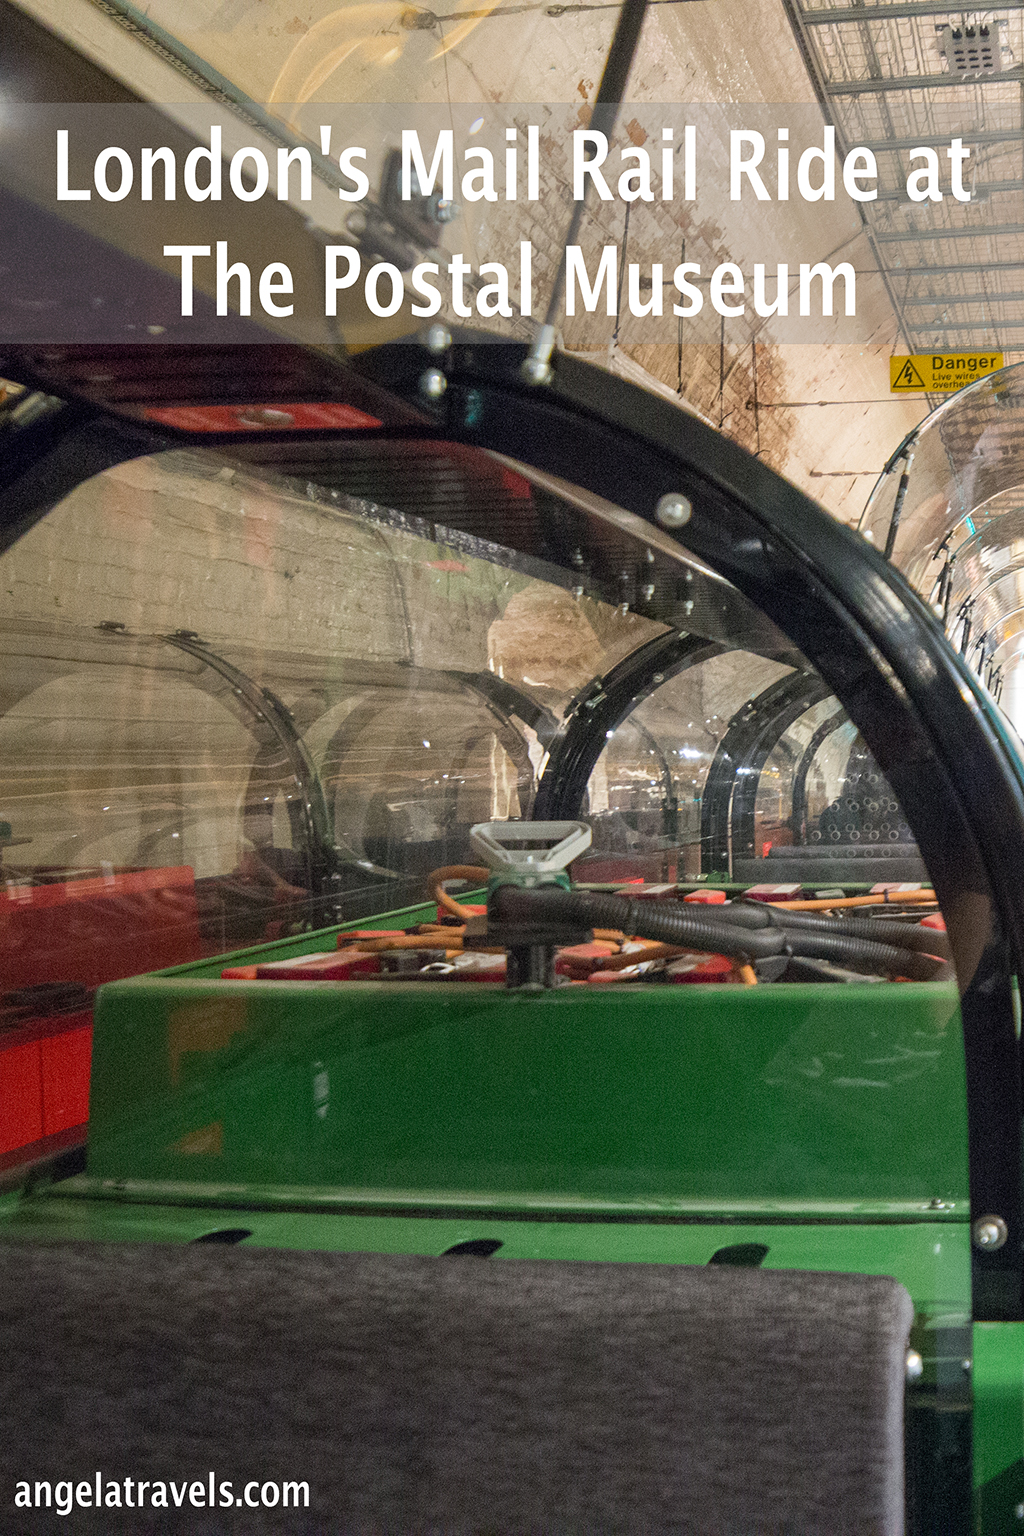 London's Mail Rail Ride at The Postal Museum